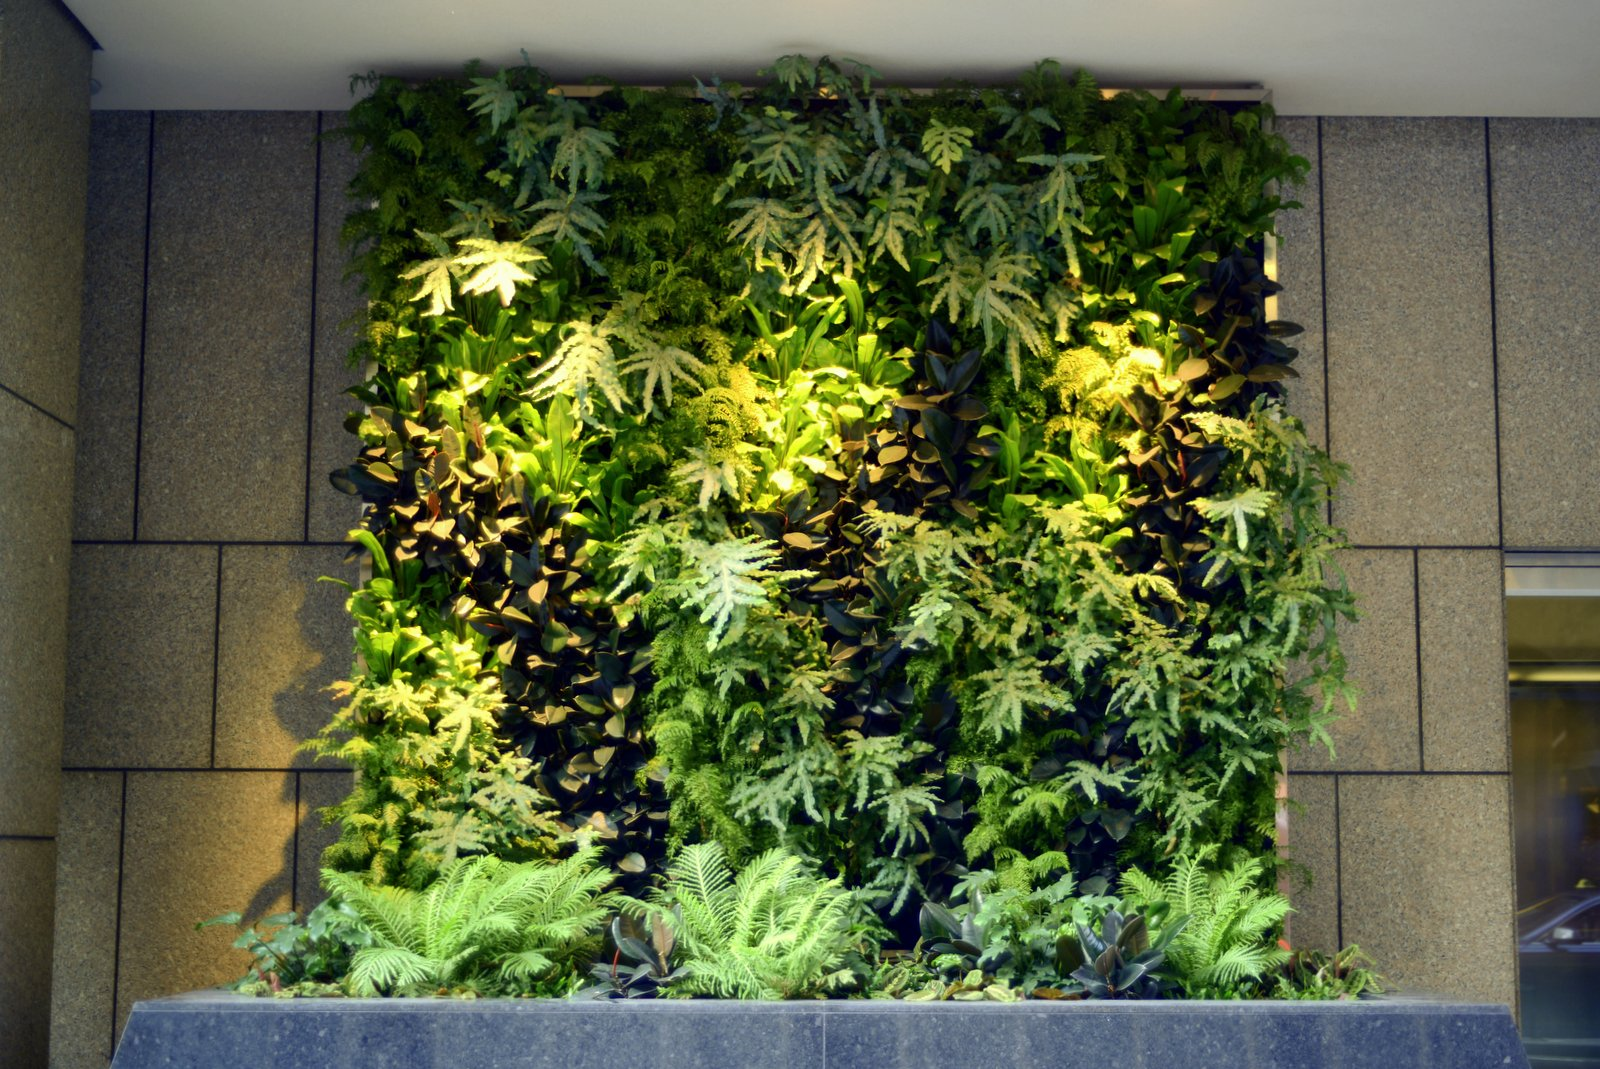 plants on walls vertical garden systems december 2012. Black Bedroom Furniture Sets. Home Design Ideas